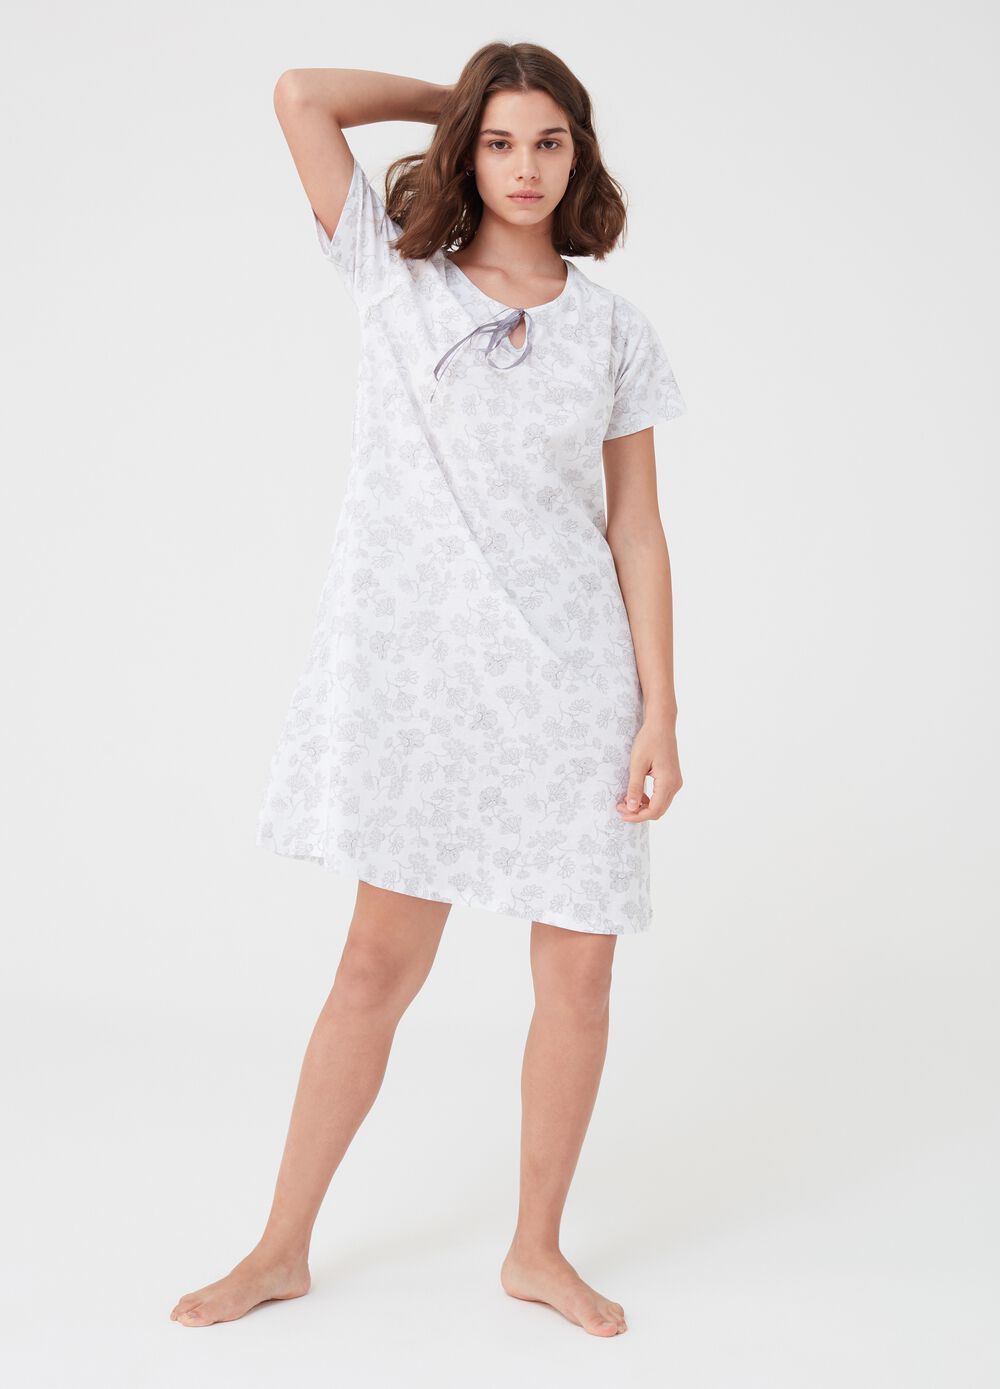 Biocotton nightshirt with floral lace